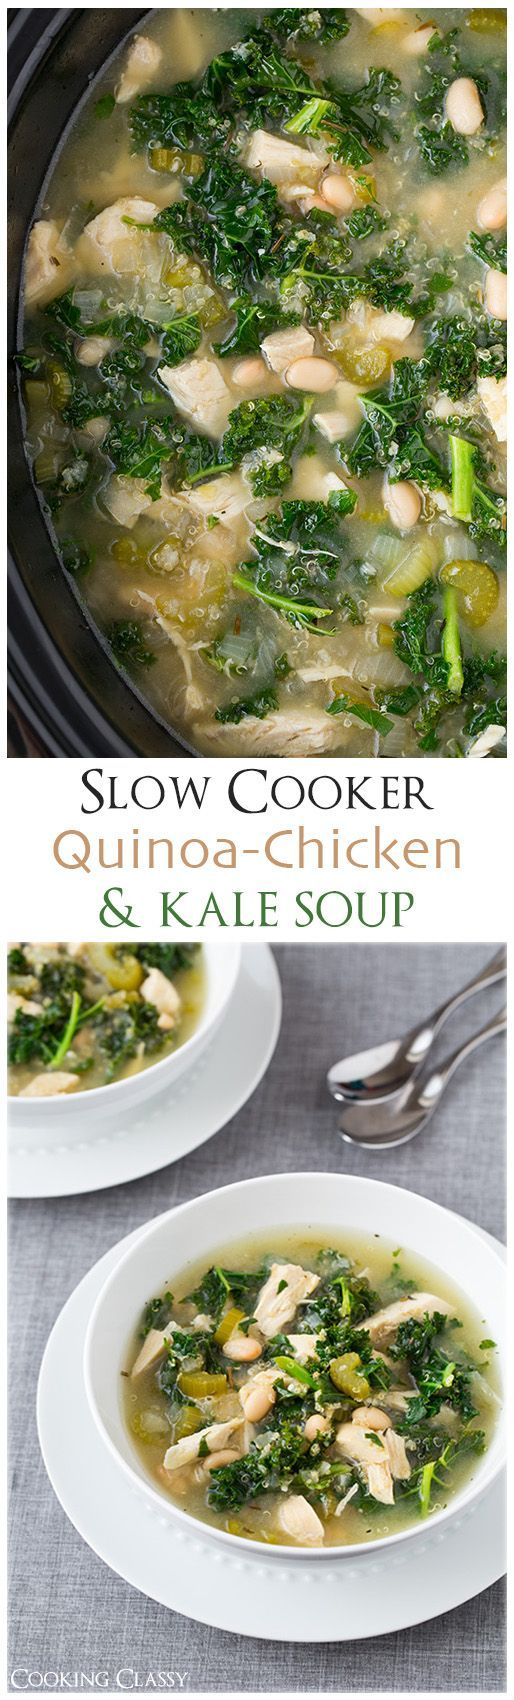 Slow Quinoa Chicken and Kale Soup - this is so healthy and so delicious! Of course, I'll have to replace the chicken with something.